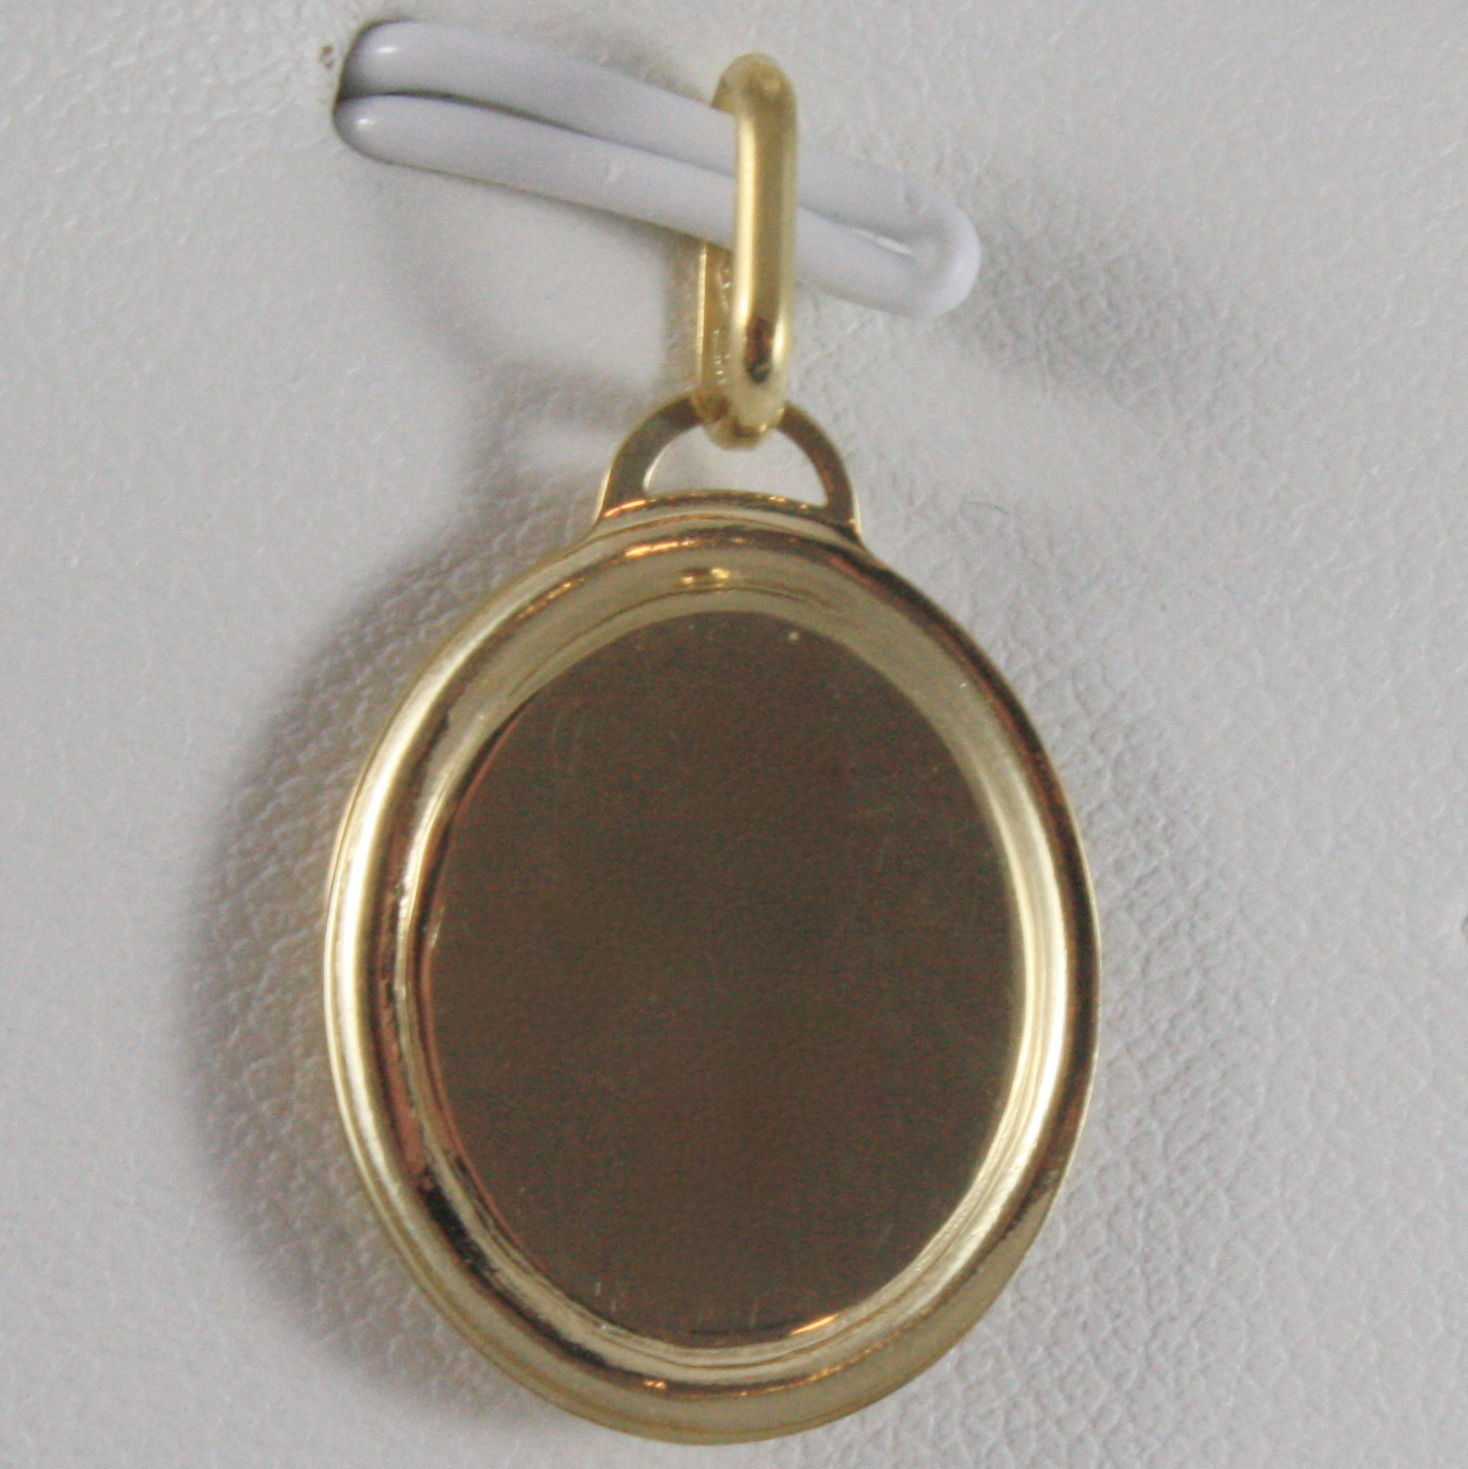 SOLID 18K YELLOW GOLD MEDAL POPE FRANCIS, FRANCISCO, ENGRAVABLE, MADE IN ITALY